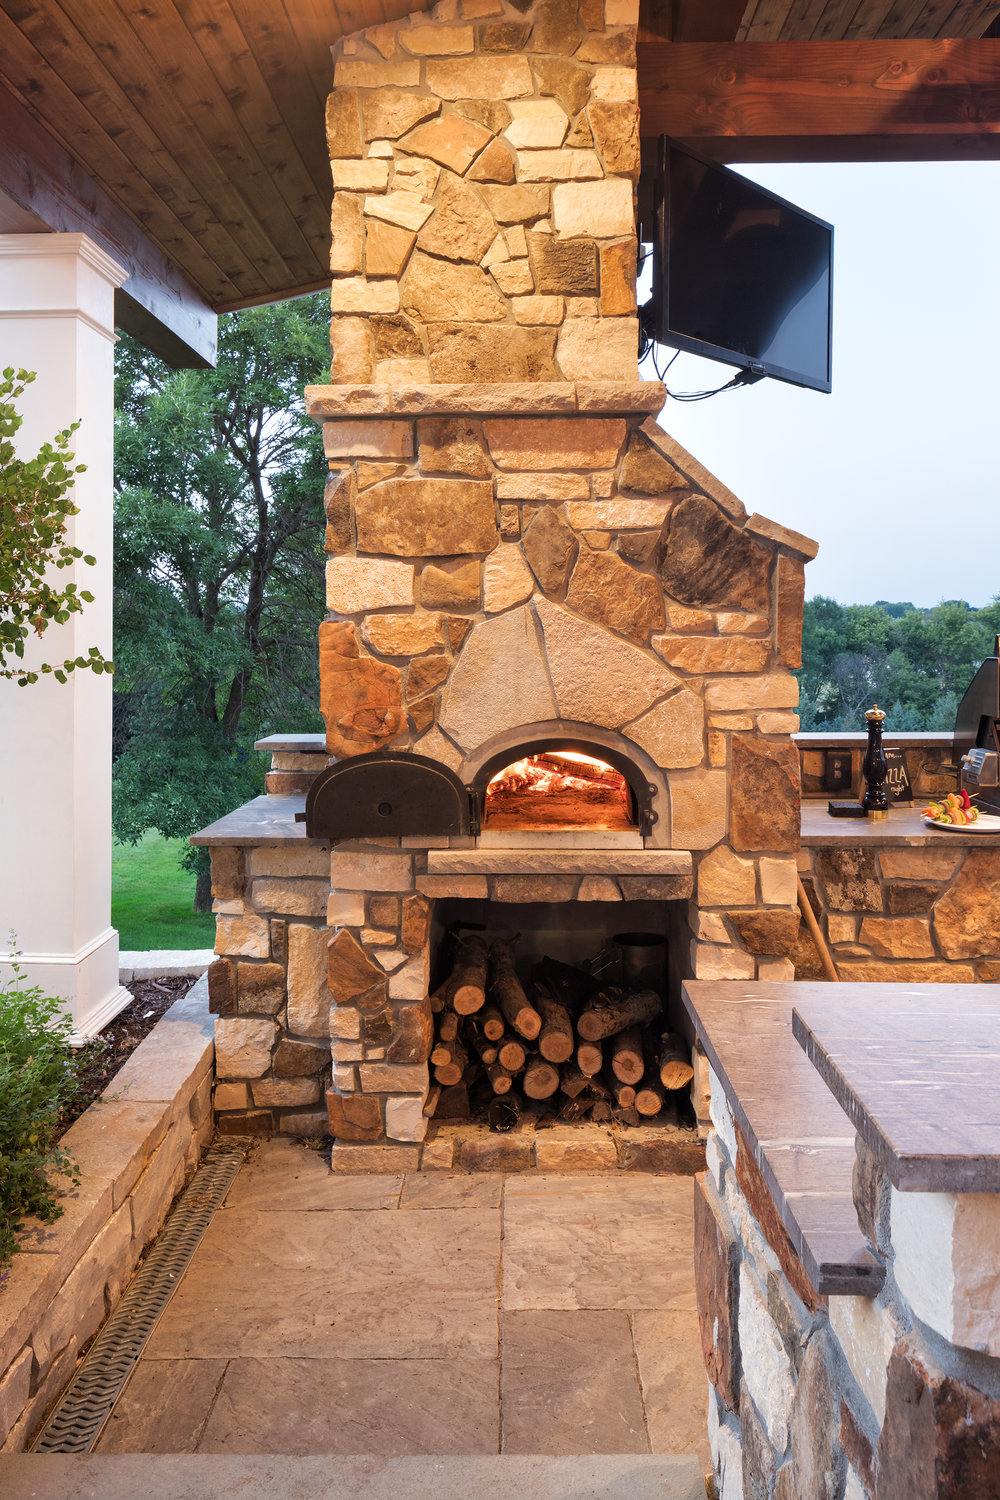 Mom's Design Build - Outdoor Pizza Oven